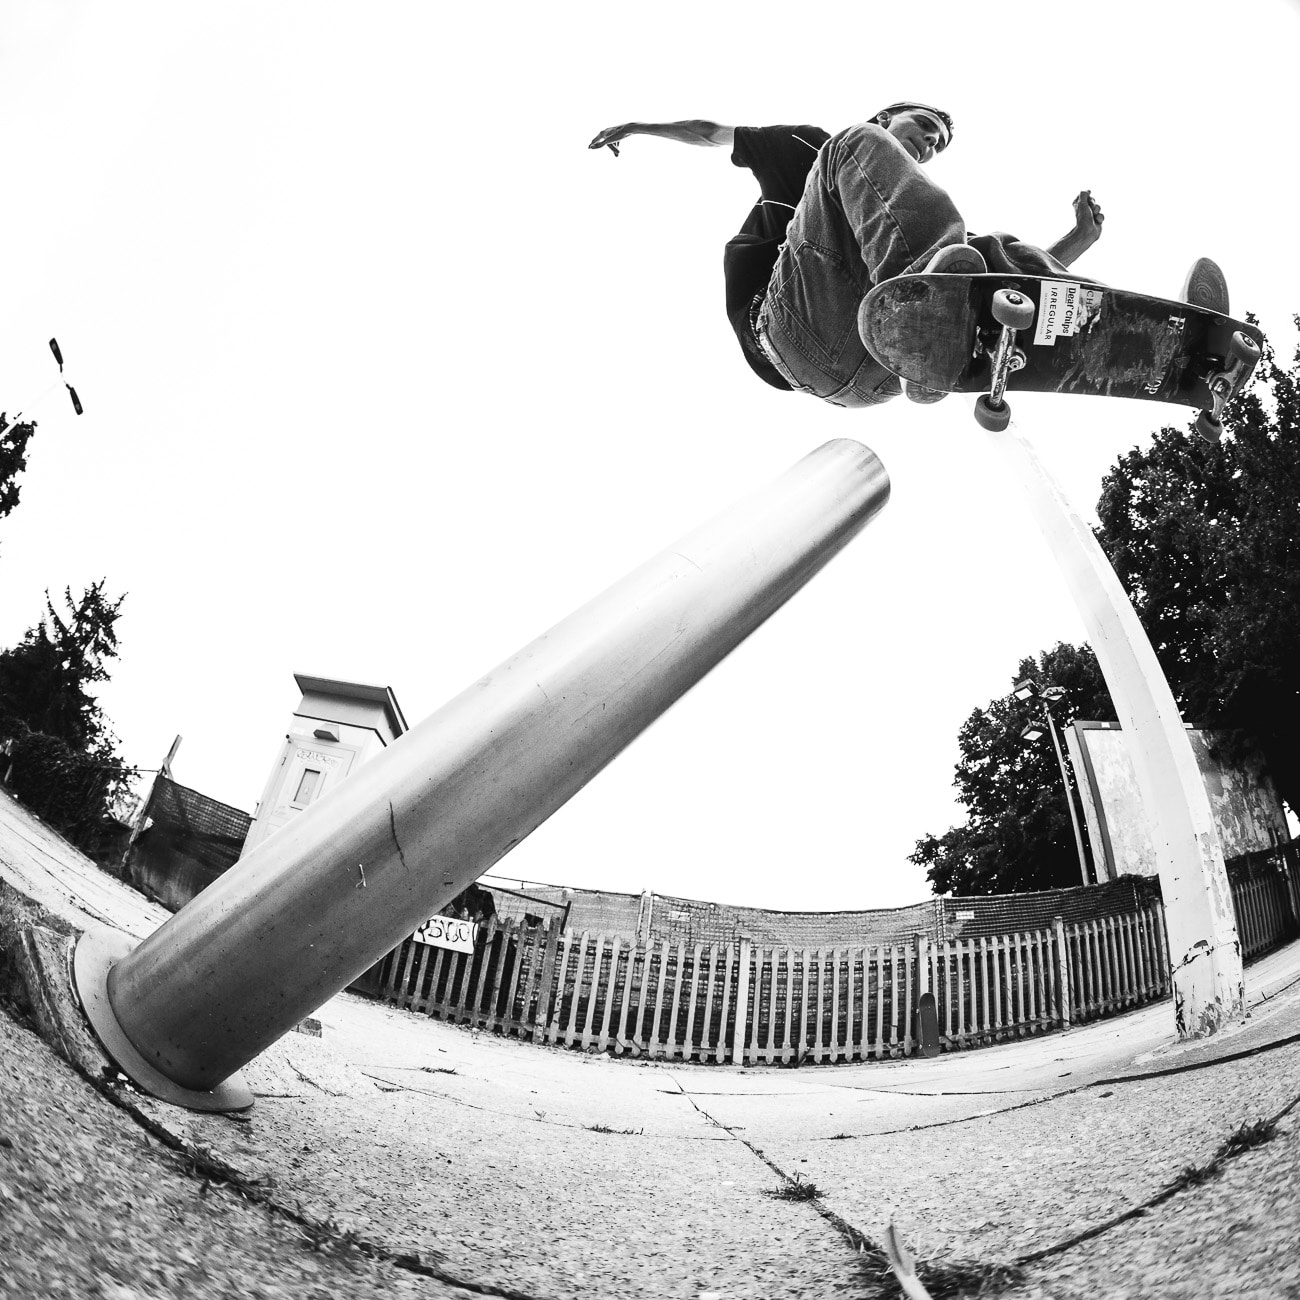 deaf-chips-irregularskatemag-milano-tour-hannes-mautner-photo-29